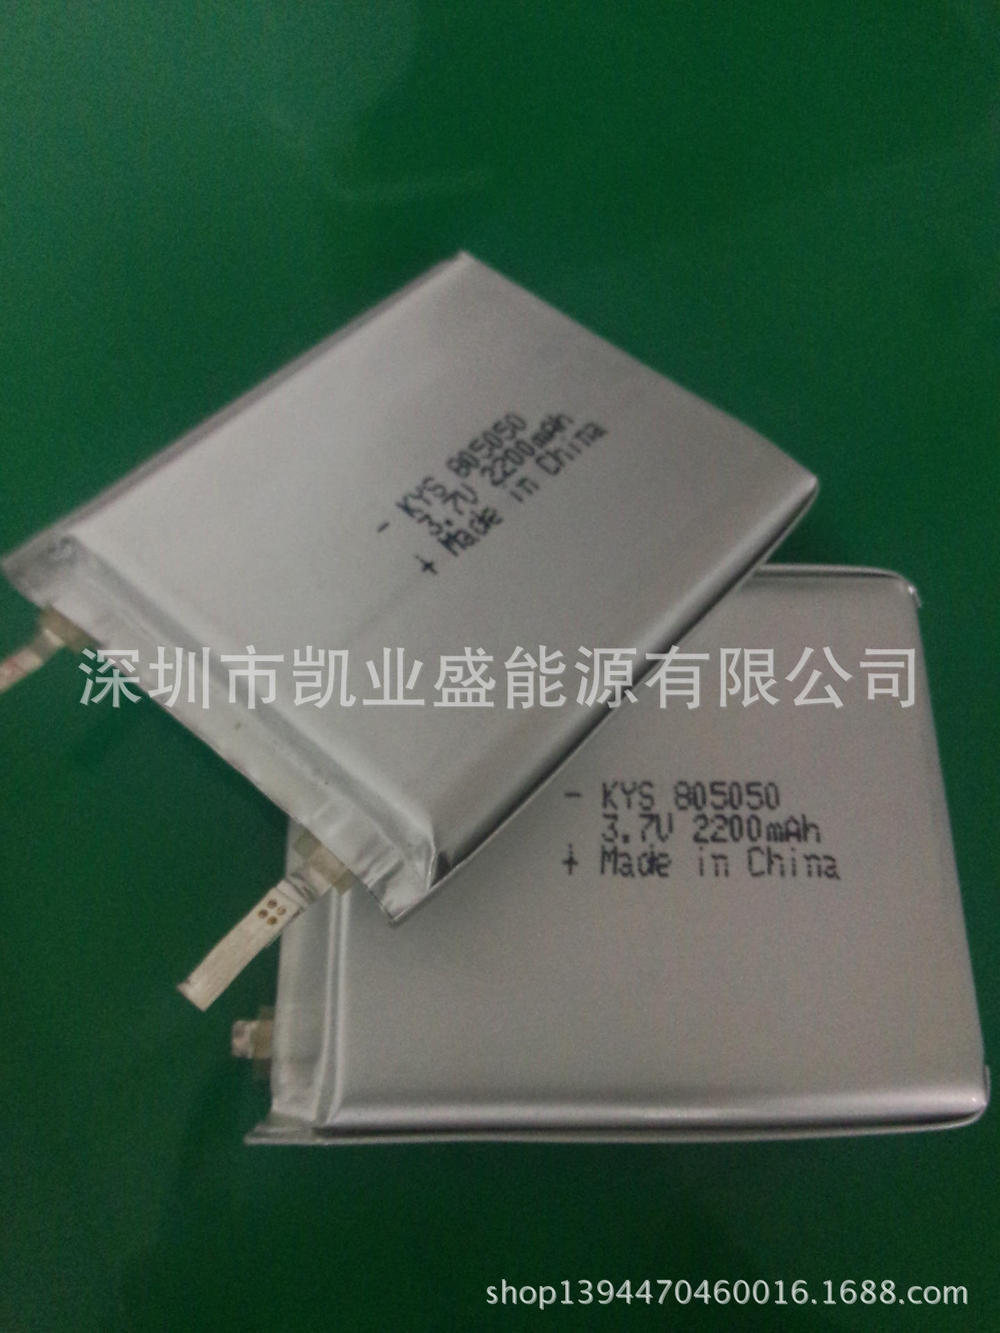 Factory direct backup power / electric tools dedicated lithium polymer battery 3.7V 805050/085050(China (Mainland))